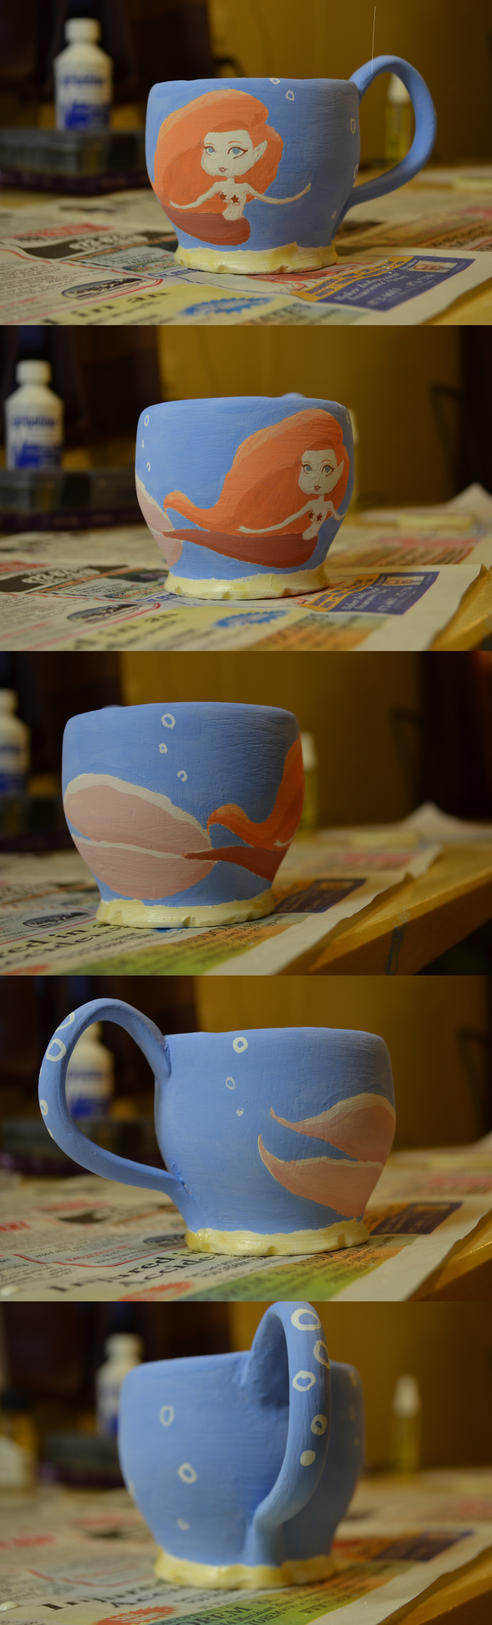 Mermaid Mug by psychoviolinist1012